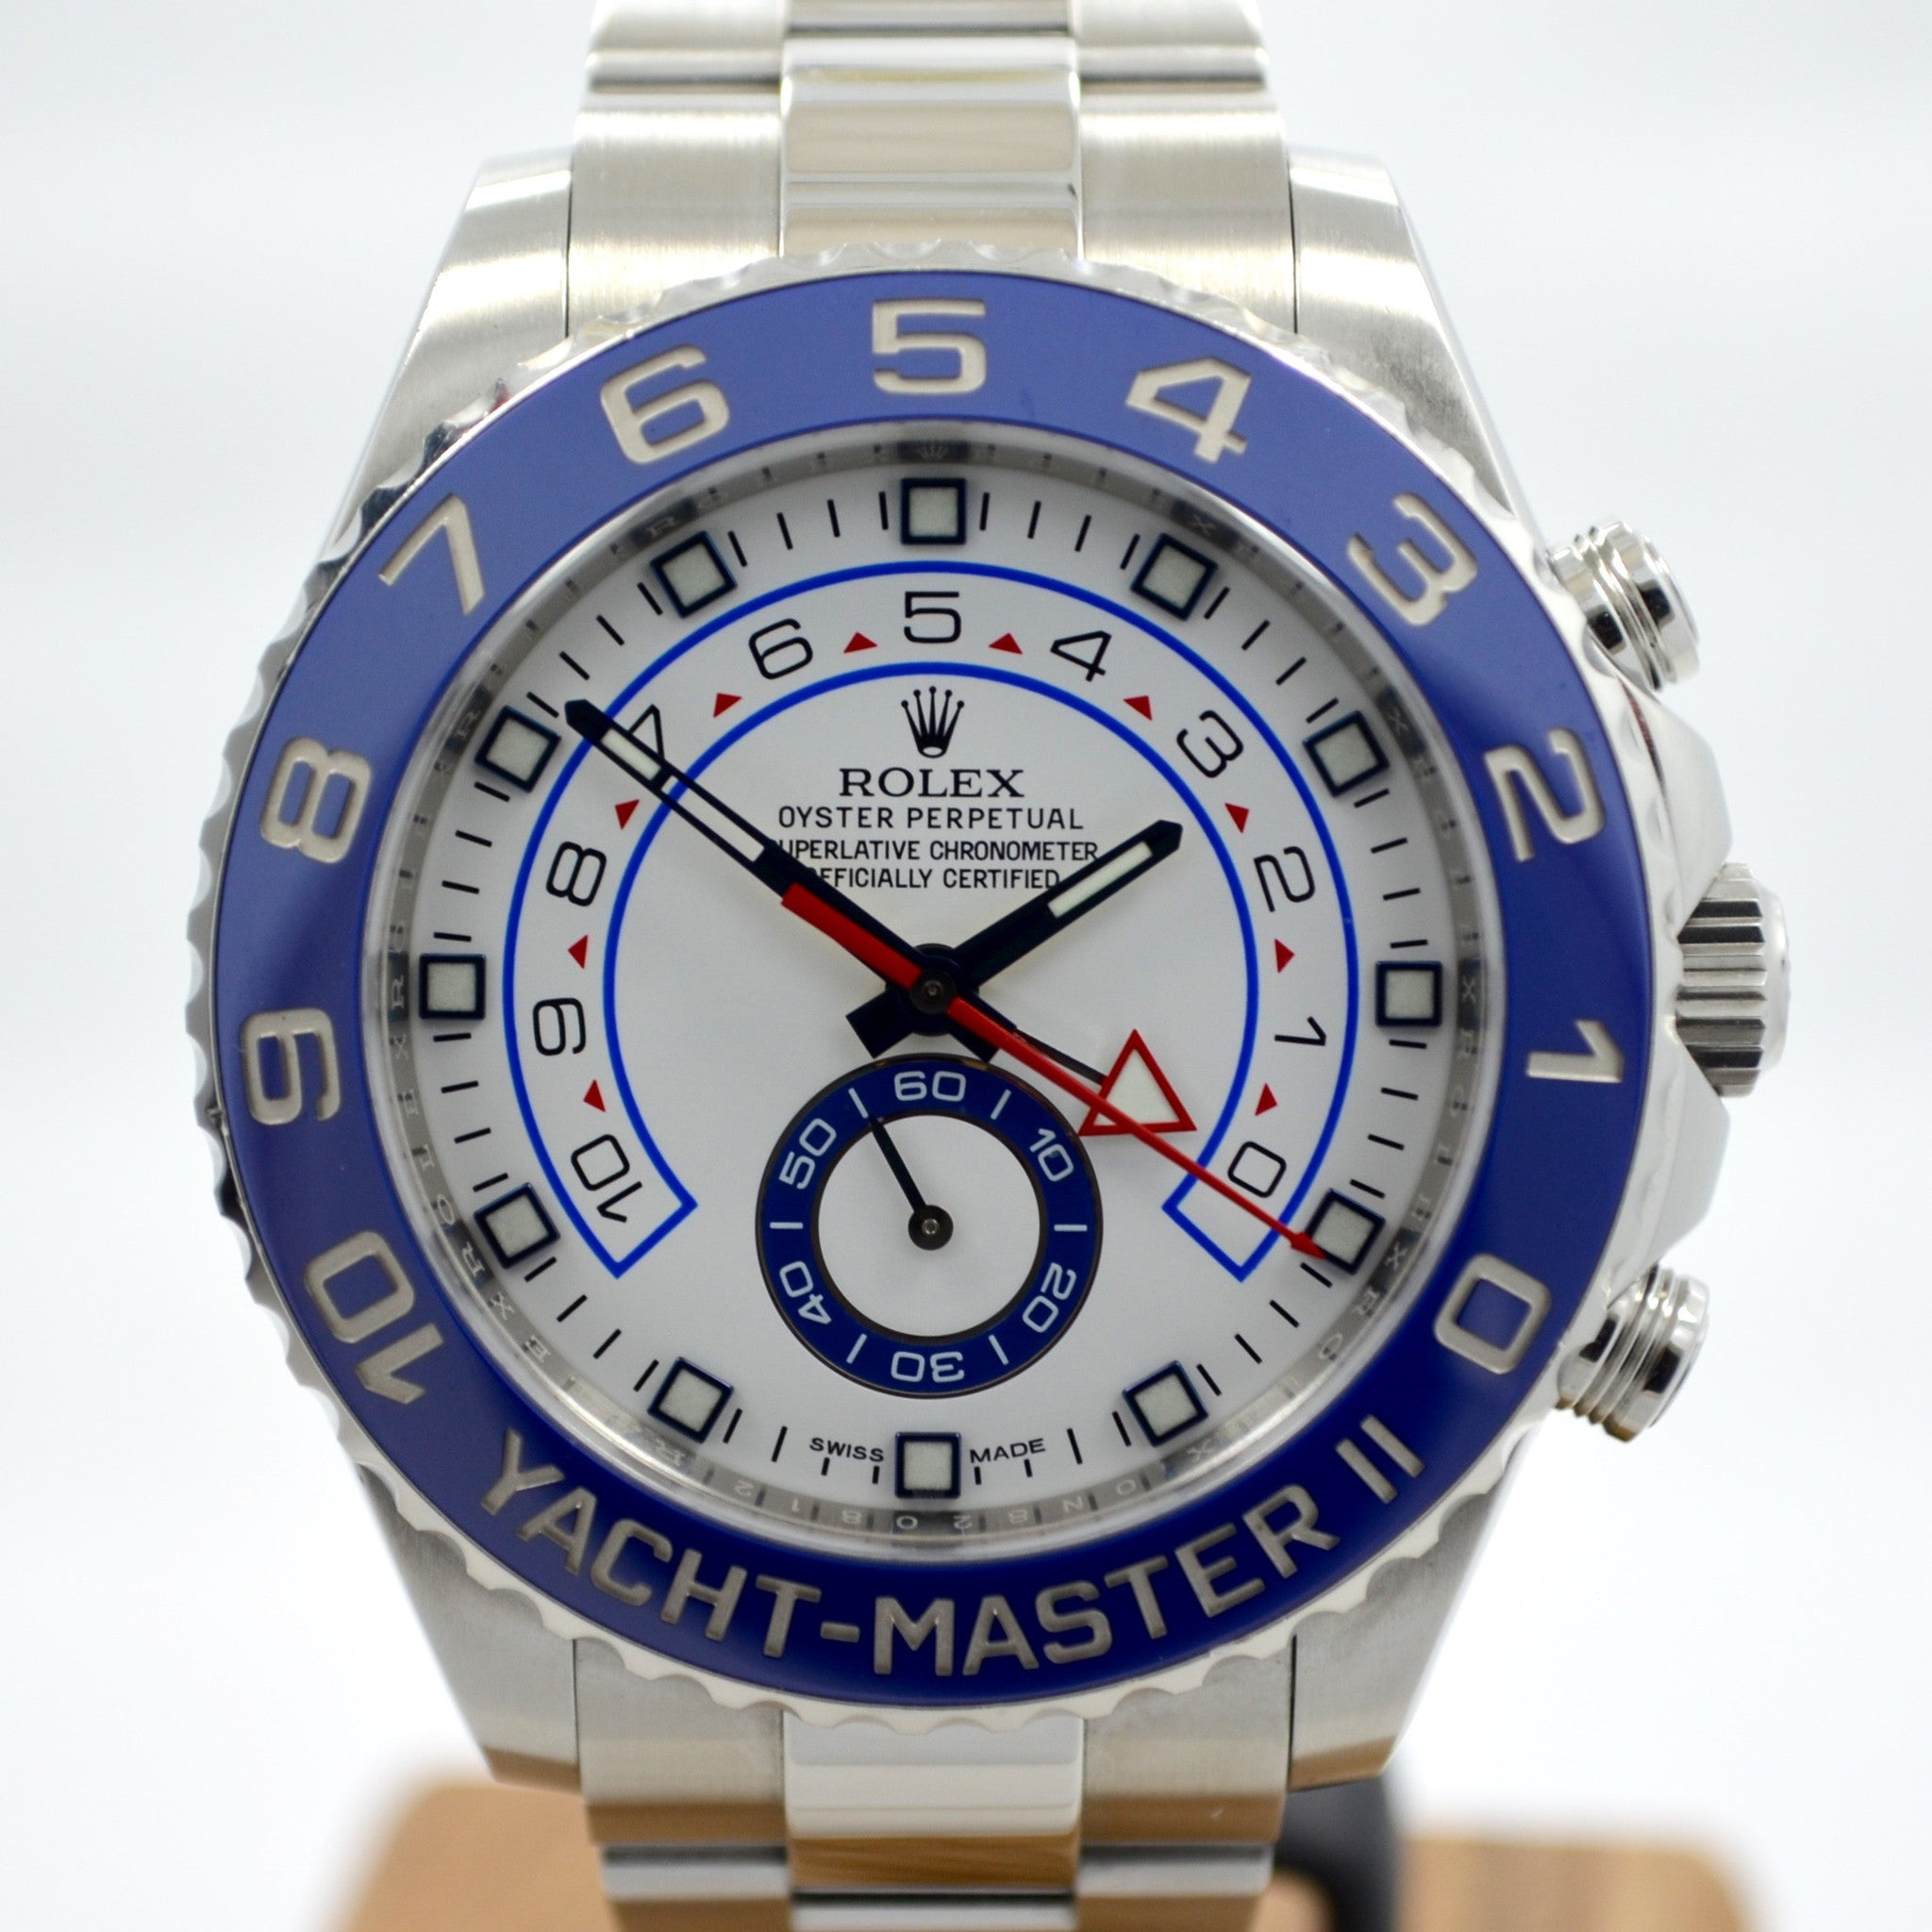 Rolex Yachtmaster II 116680 Stainless Steel Automatic Ceramic Wristwatch